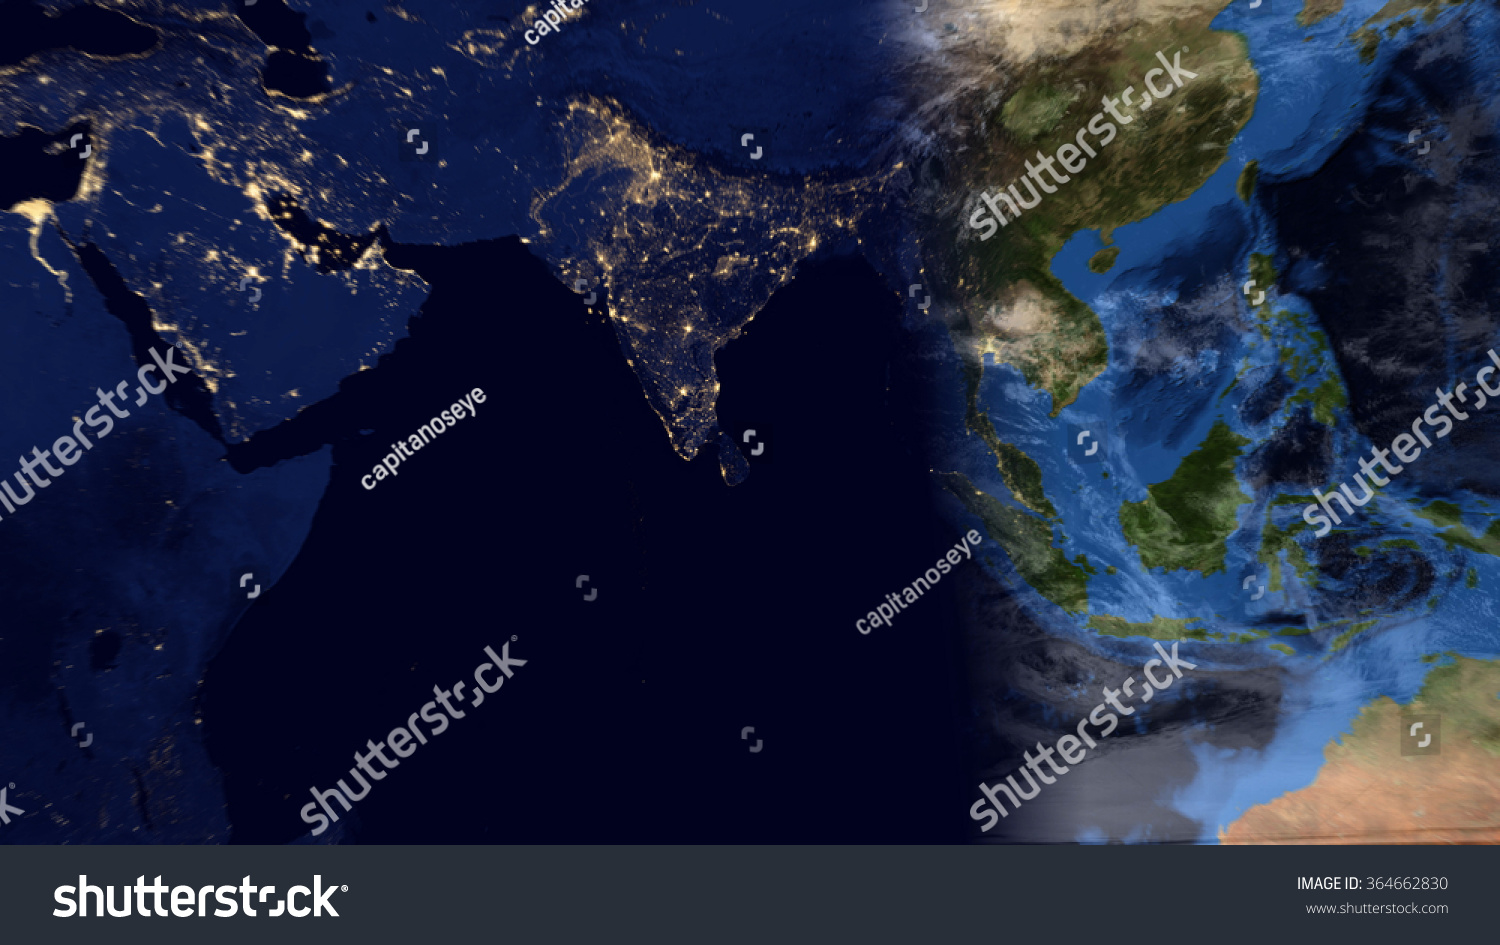 Planet earth map india indonesia asia elements this stock planet earth map india indonesia asia elements this stock illustration 364662830 shutterstock gumiabroncs Gallery